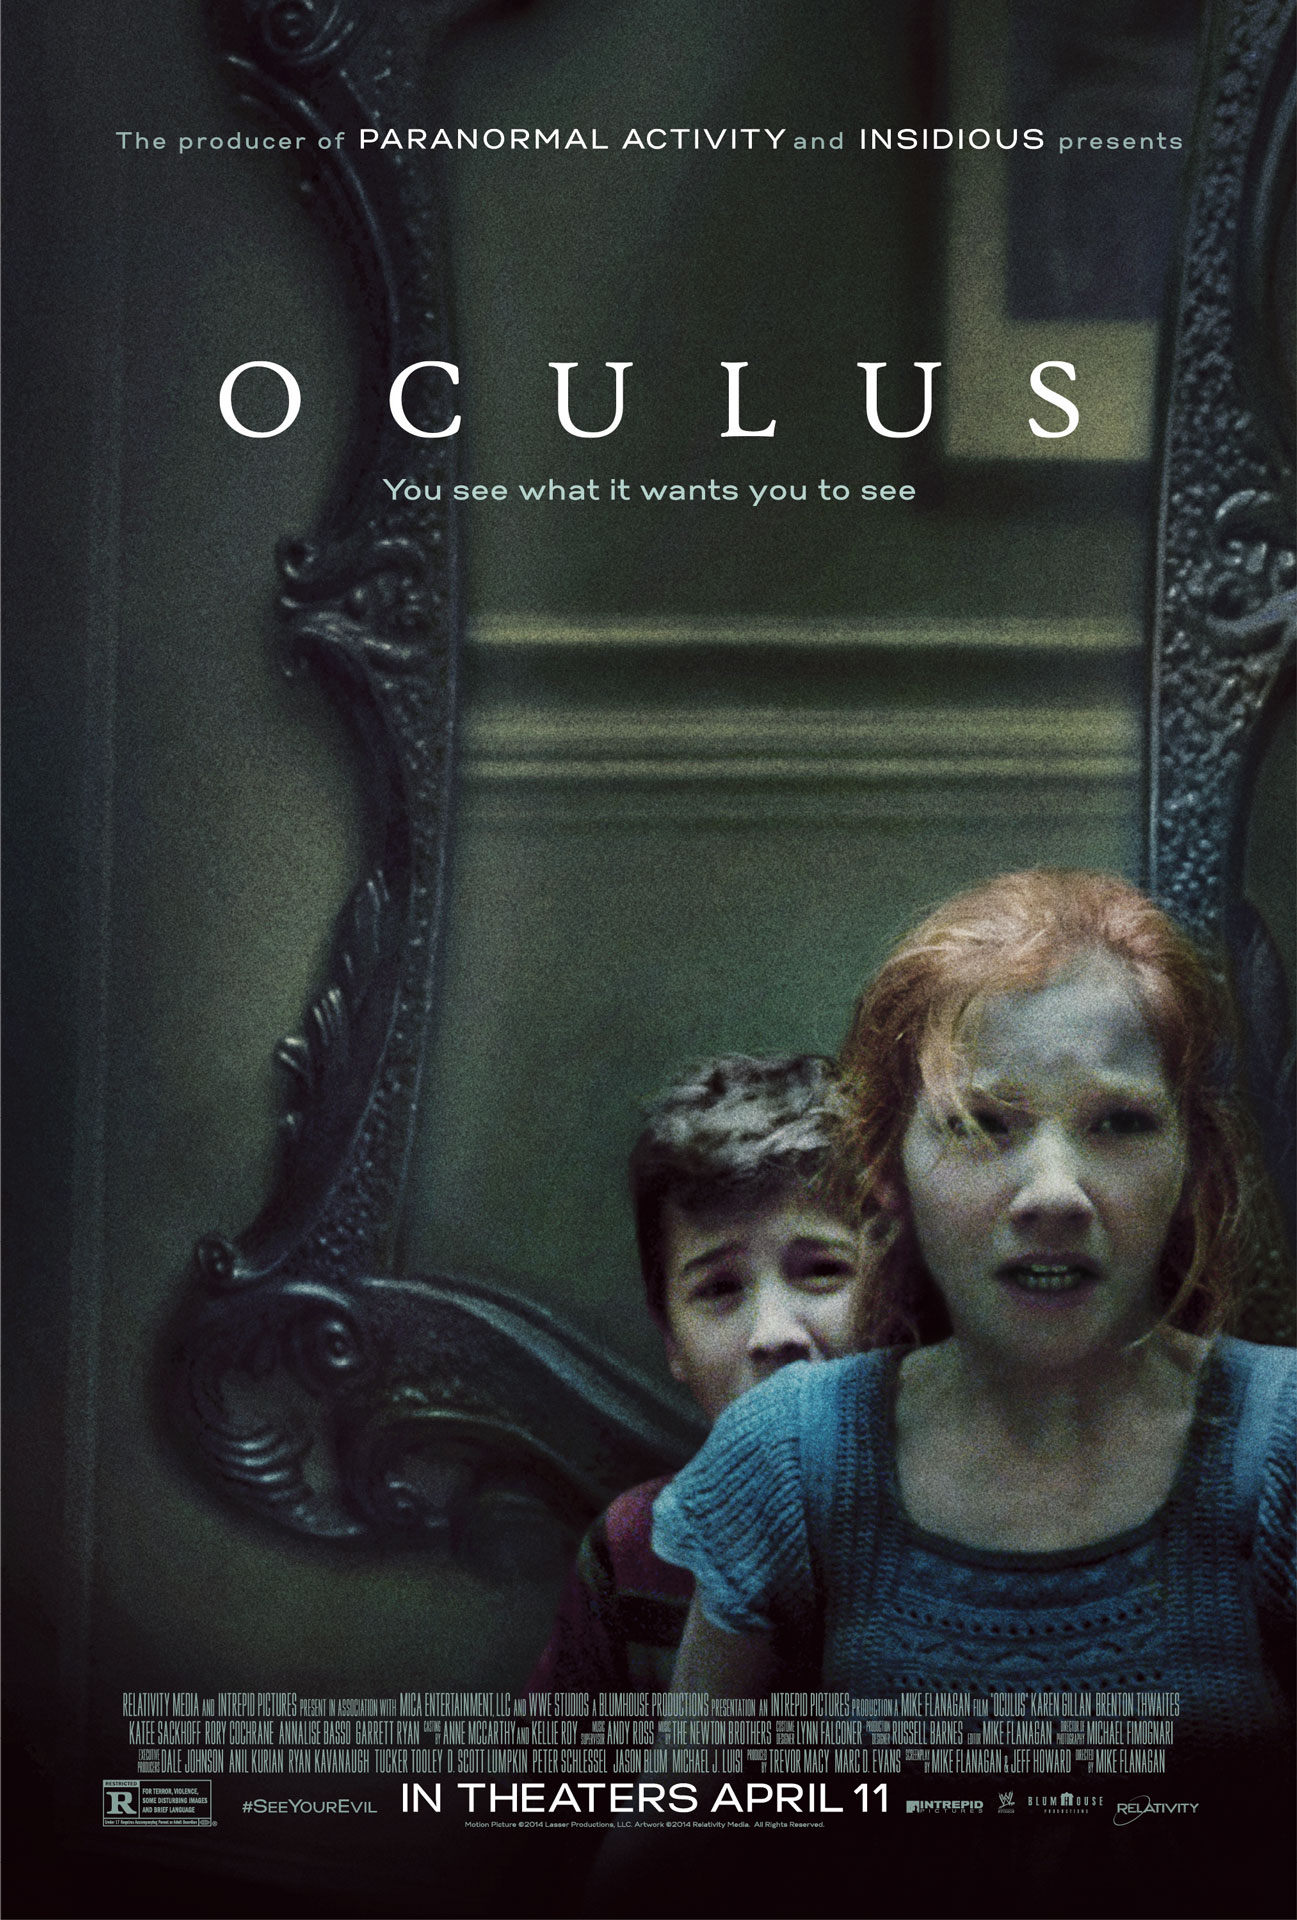 The poster for Mike Flanagan's OCULUS.